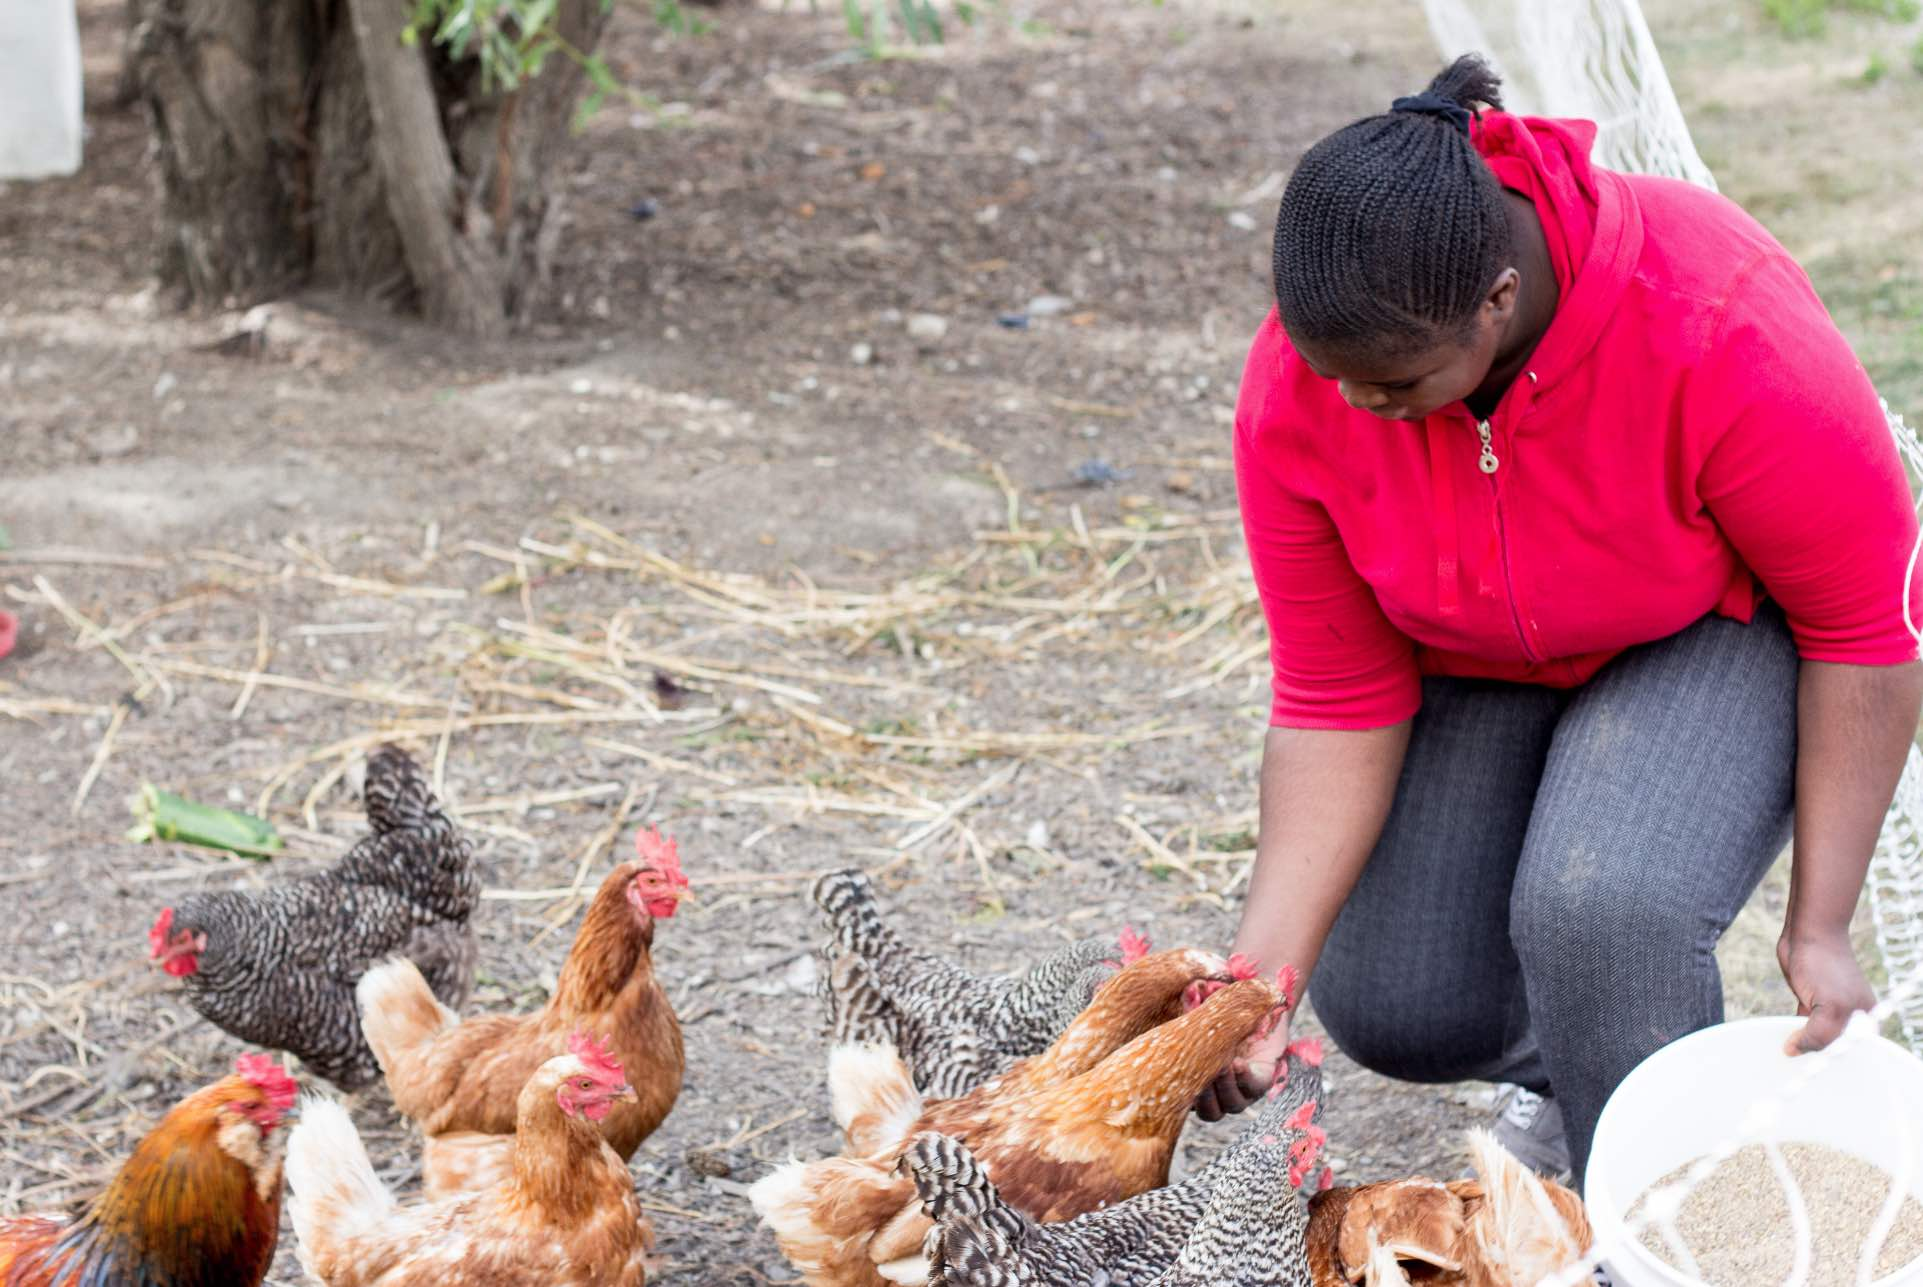 Youth leaning down to feed flock of chickens